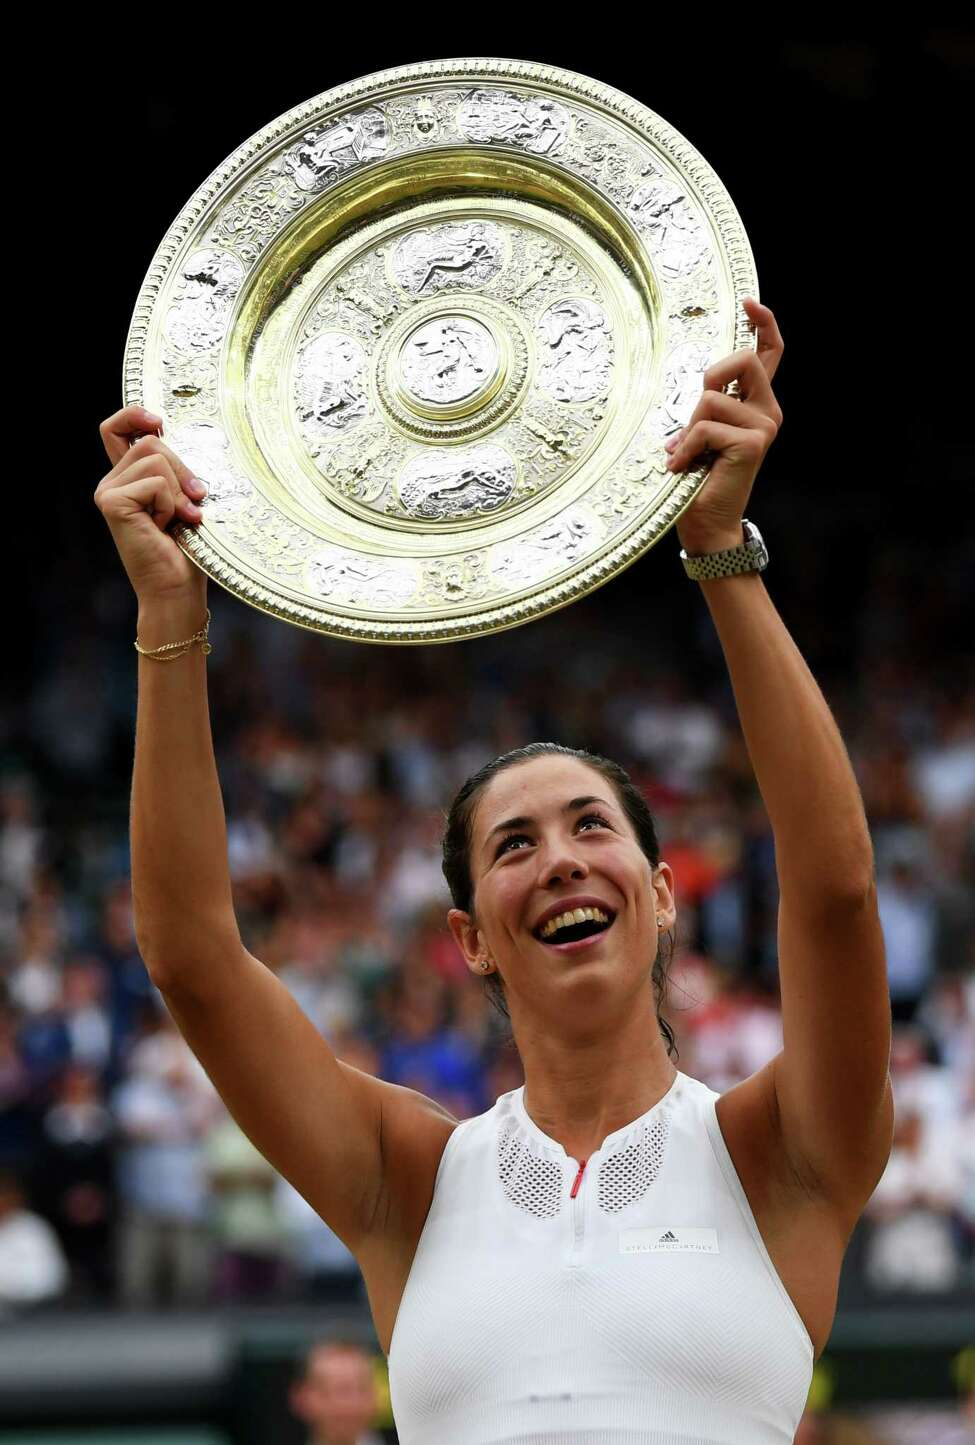 *** BESTPIX *** LONDON, ENGLAND - JULY 15: Garbine Muguruza of Spain celebrates victory with the trophy after the Ladies Singles final against Venus Williams of The United States on day twelve of the Wimbledon Lawn Tennis Championships at the All England Lawn Tennis and Croquet Club at Wimbledon on July 15, 2017 in London, England. (Photo by Shaun Botterill/Getty Images) ORG XMIT: 700042013